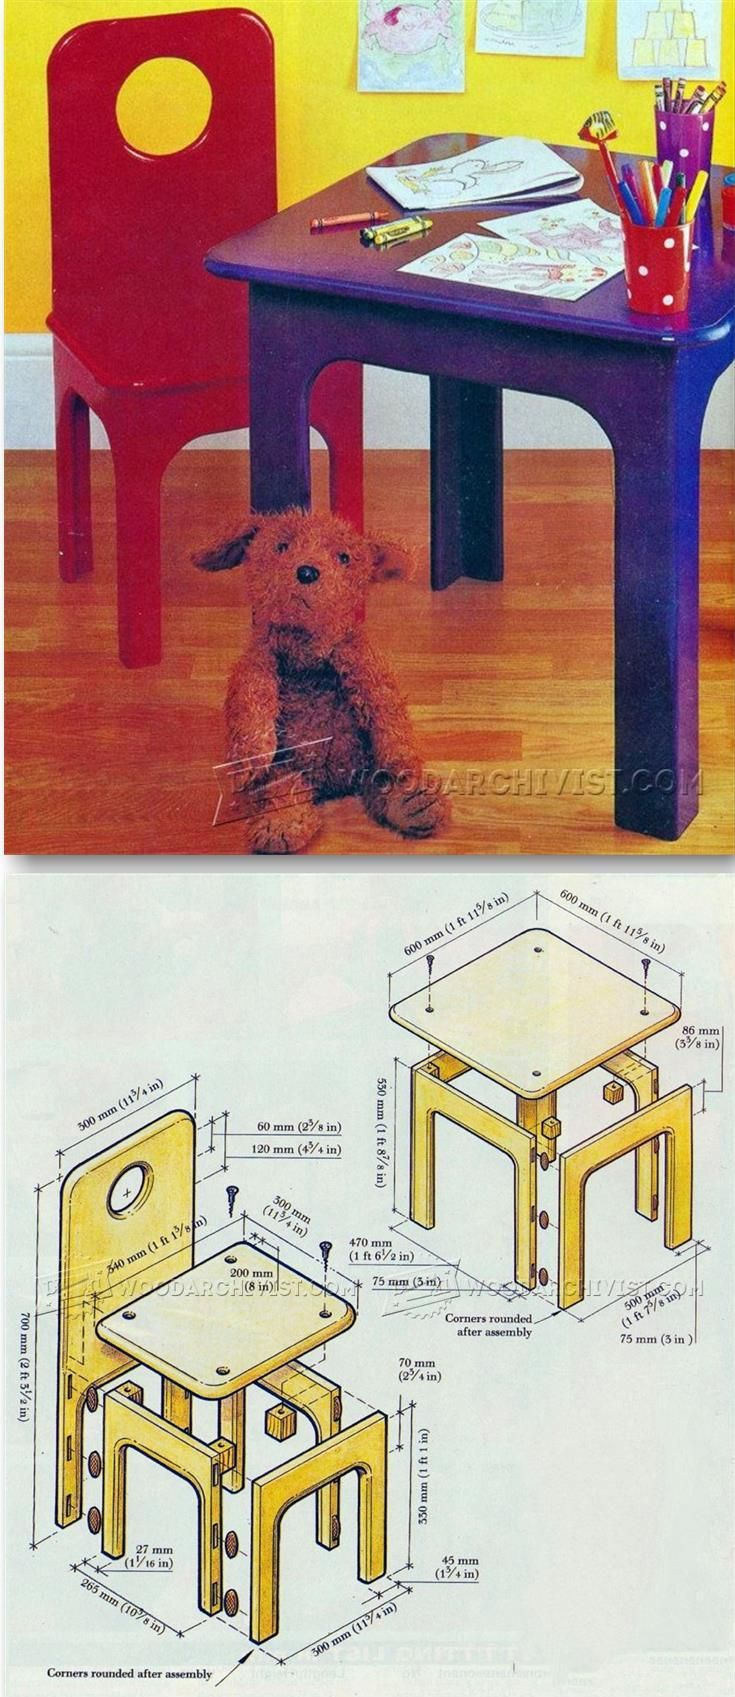 Kids Table and Chair Plans - Children's Furniture Plans and Projects   WoodArchivist.com